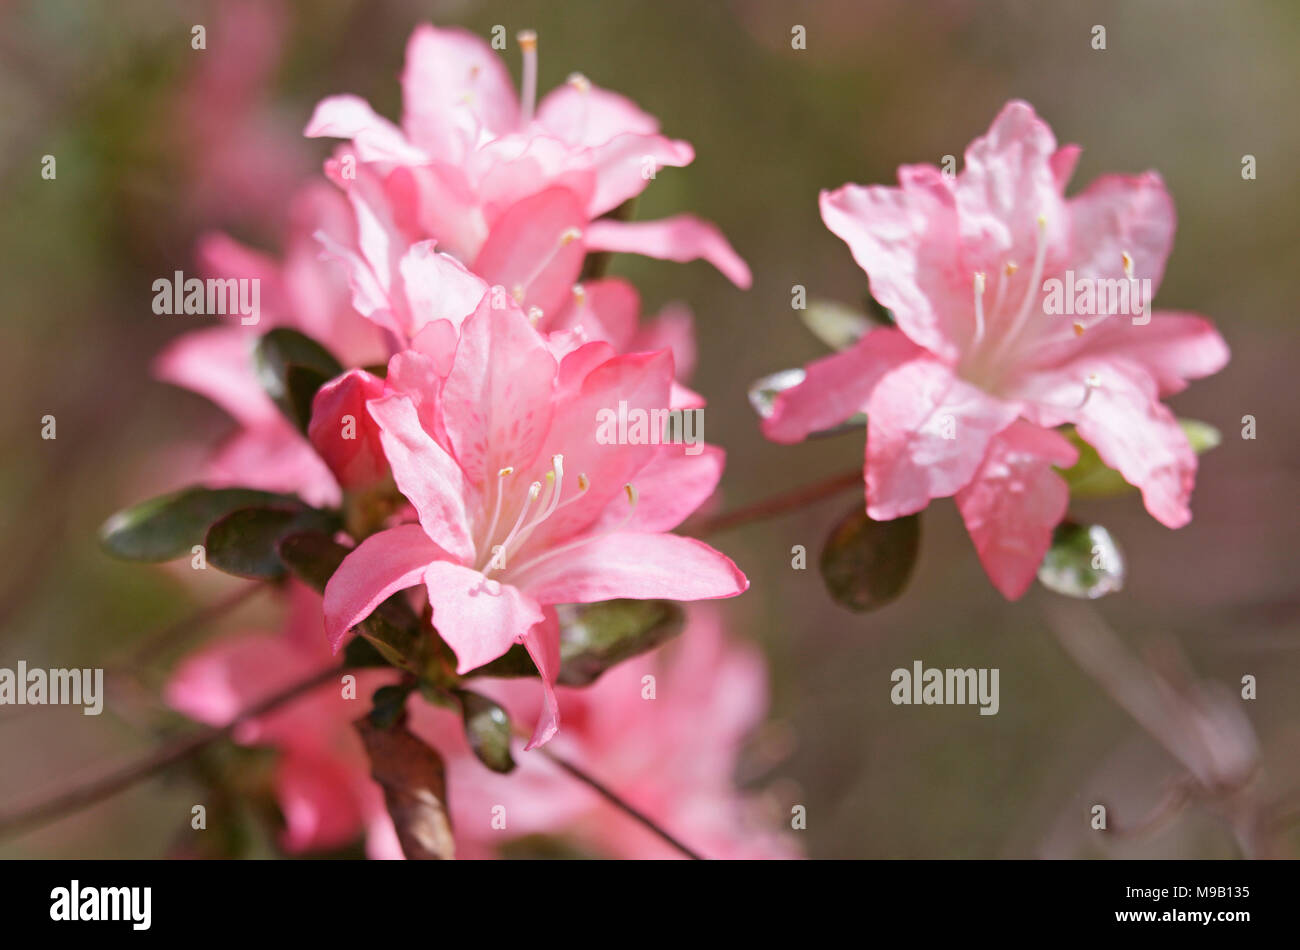 Rhododendron 'Pink pearl' - Azalea - April Stock Photo